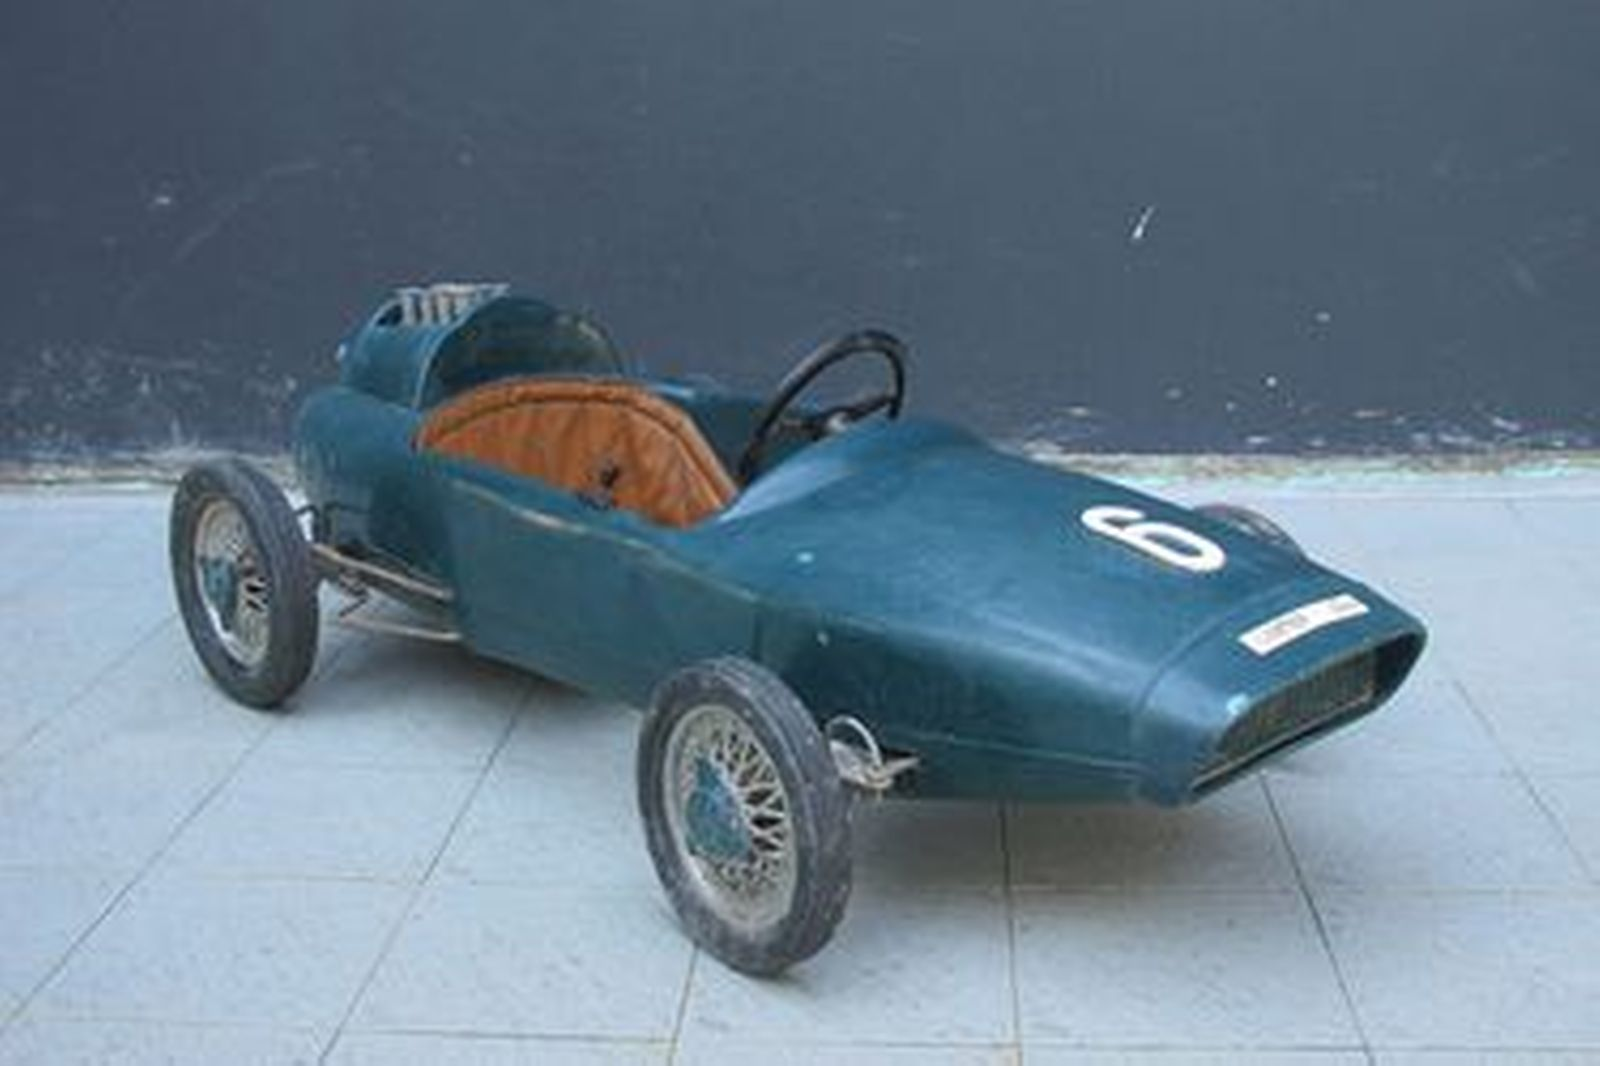 Sold: Pedal Car - c1960?s Pines Lotus Racing Car (115 x 55 x 35cm ...